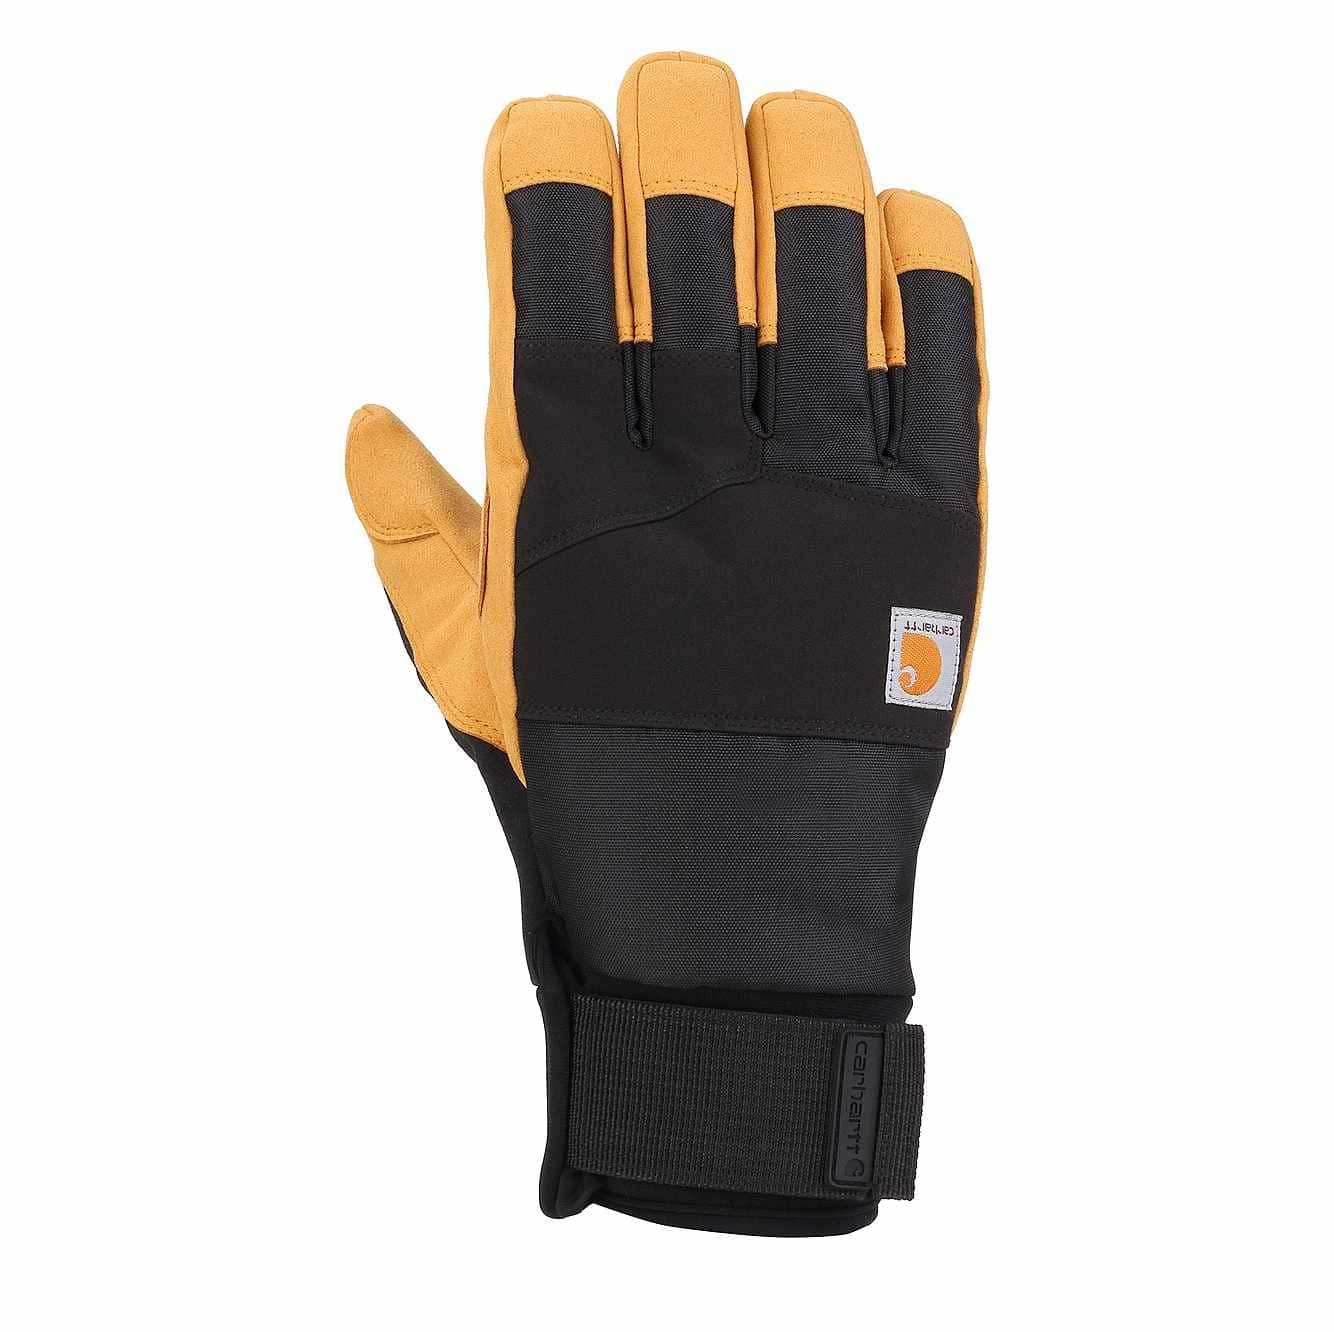 Picture of Stoker Insulated Glove in Black Barley